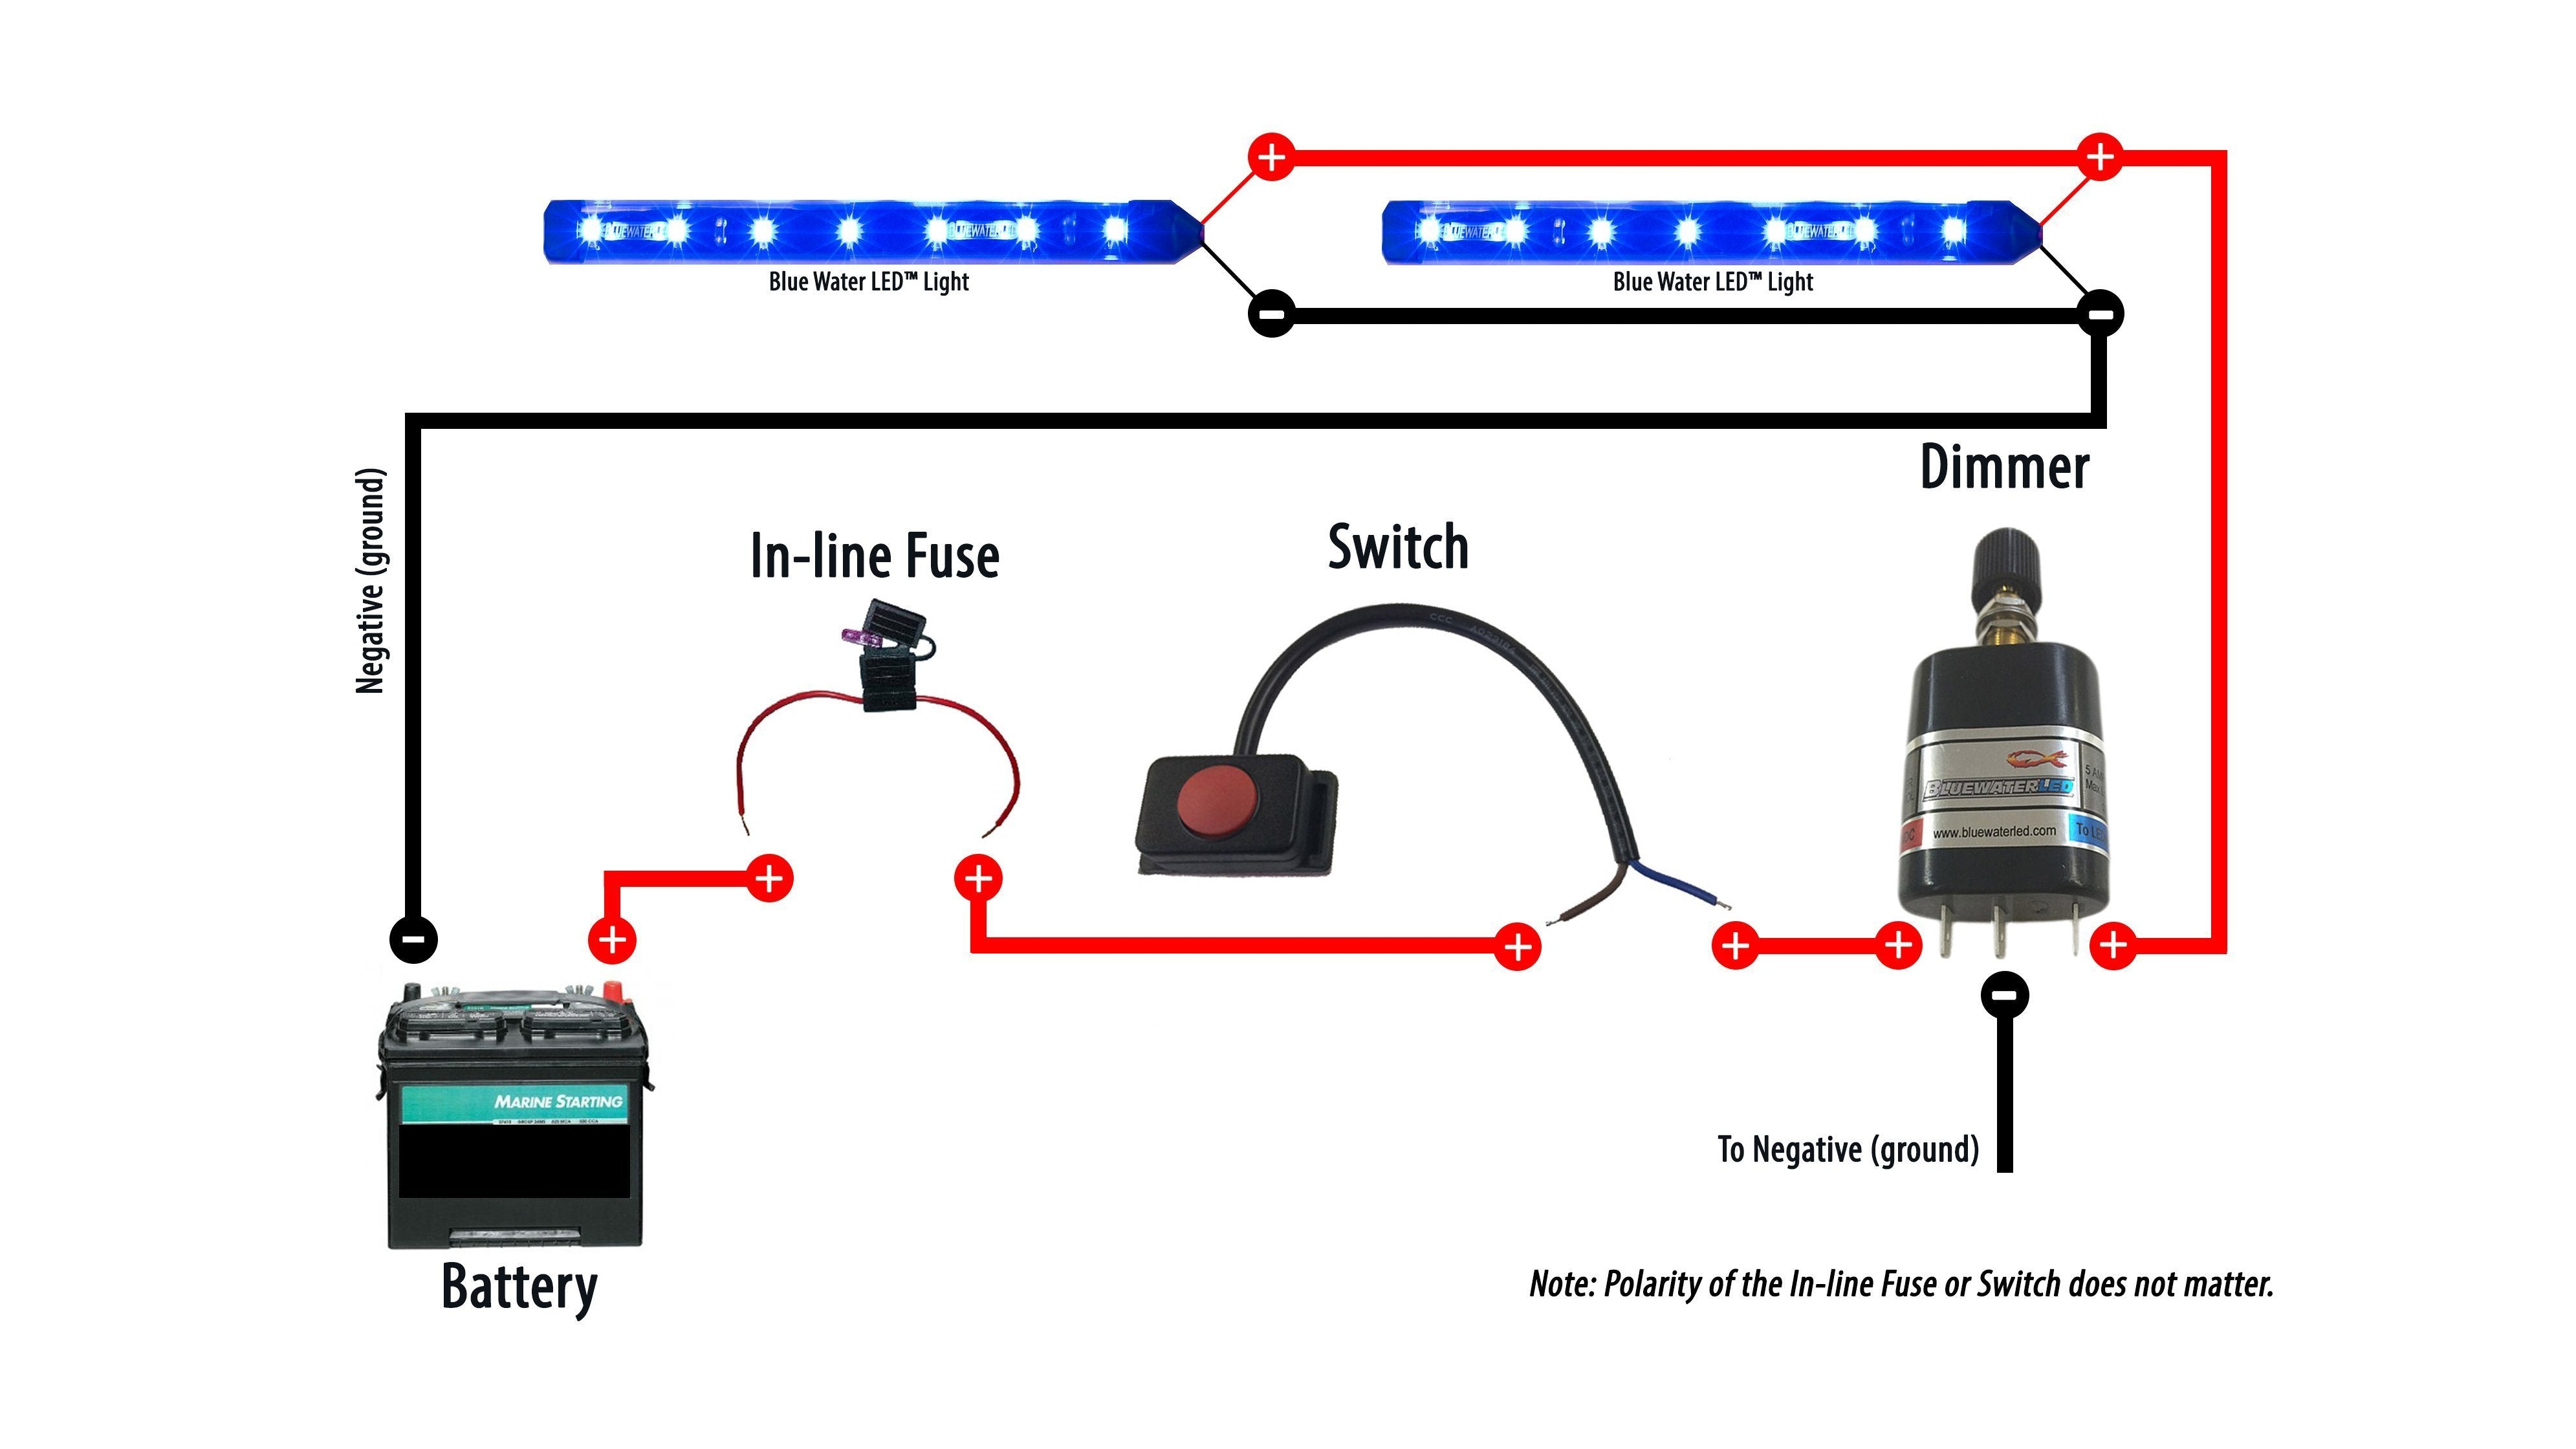 BLUEWATERLED Dimmer / On / Off Control